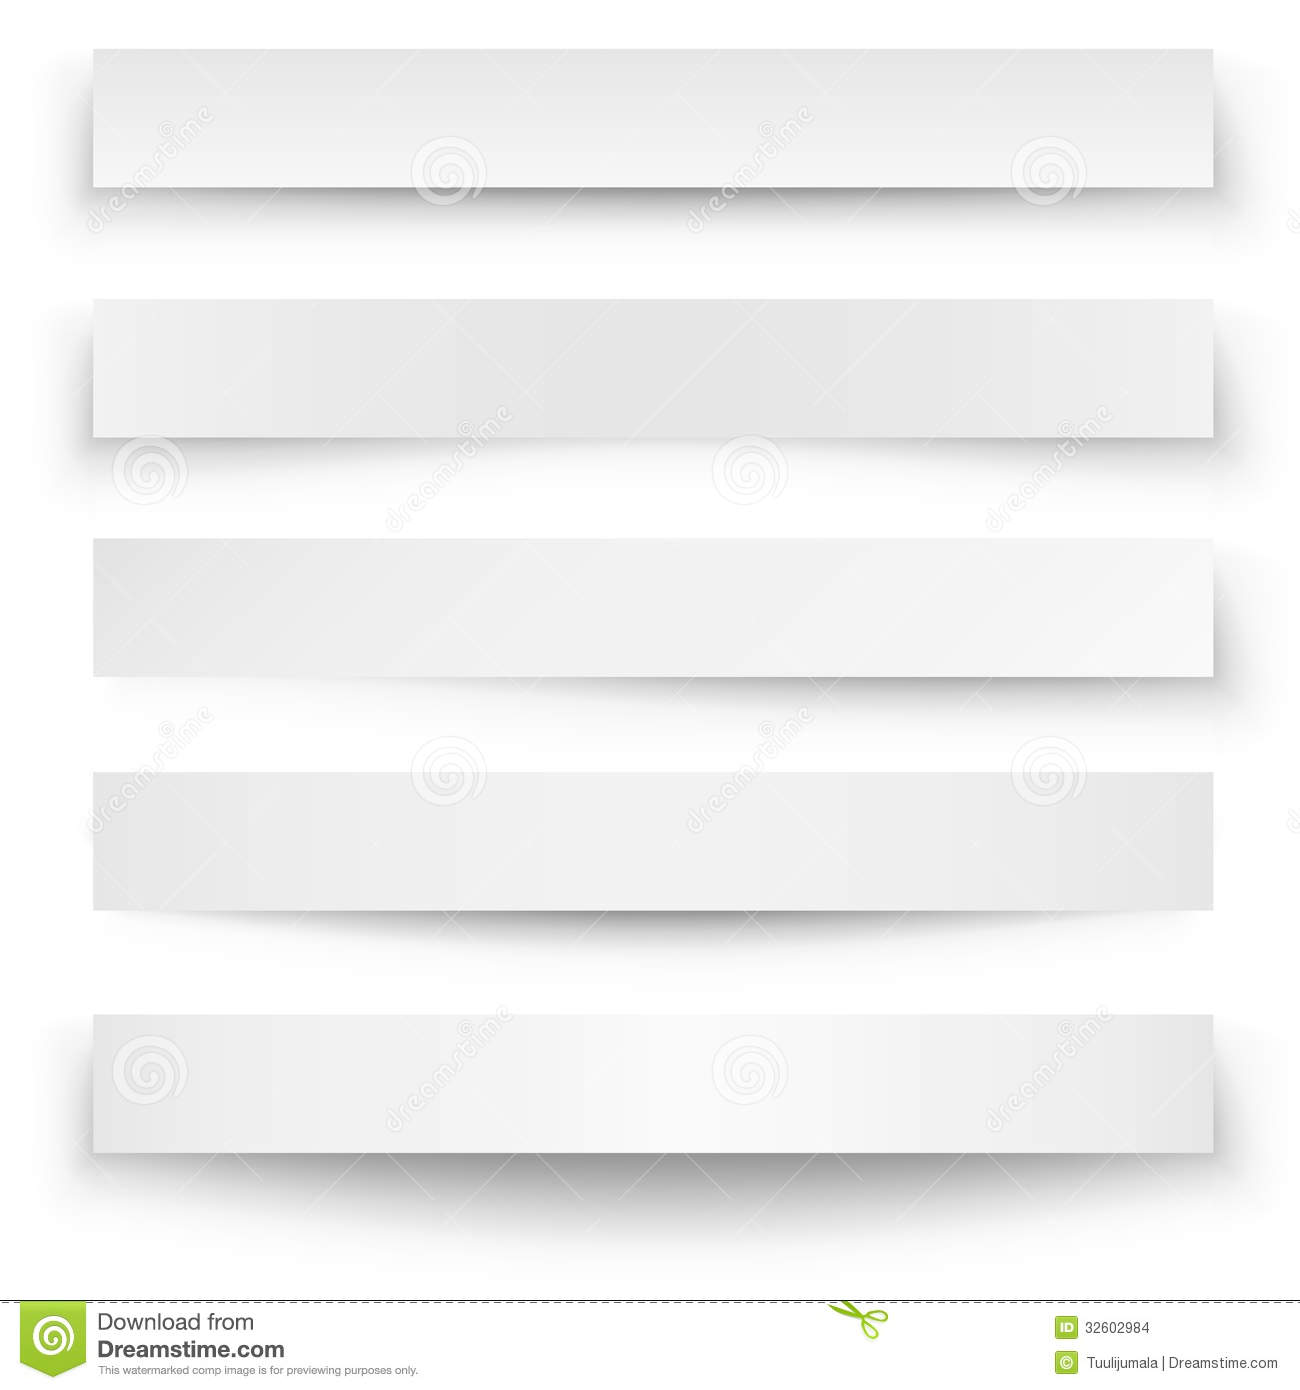 Banner shadow template stock vector  Illustration of gray - 32602984